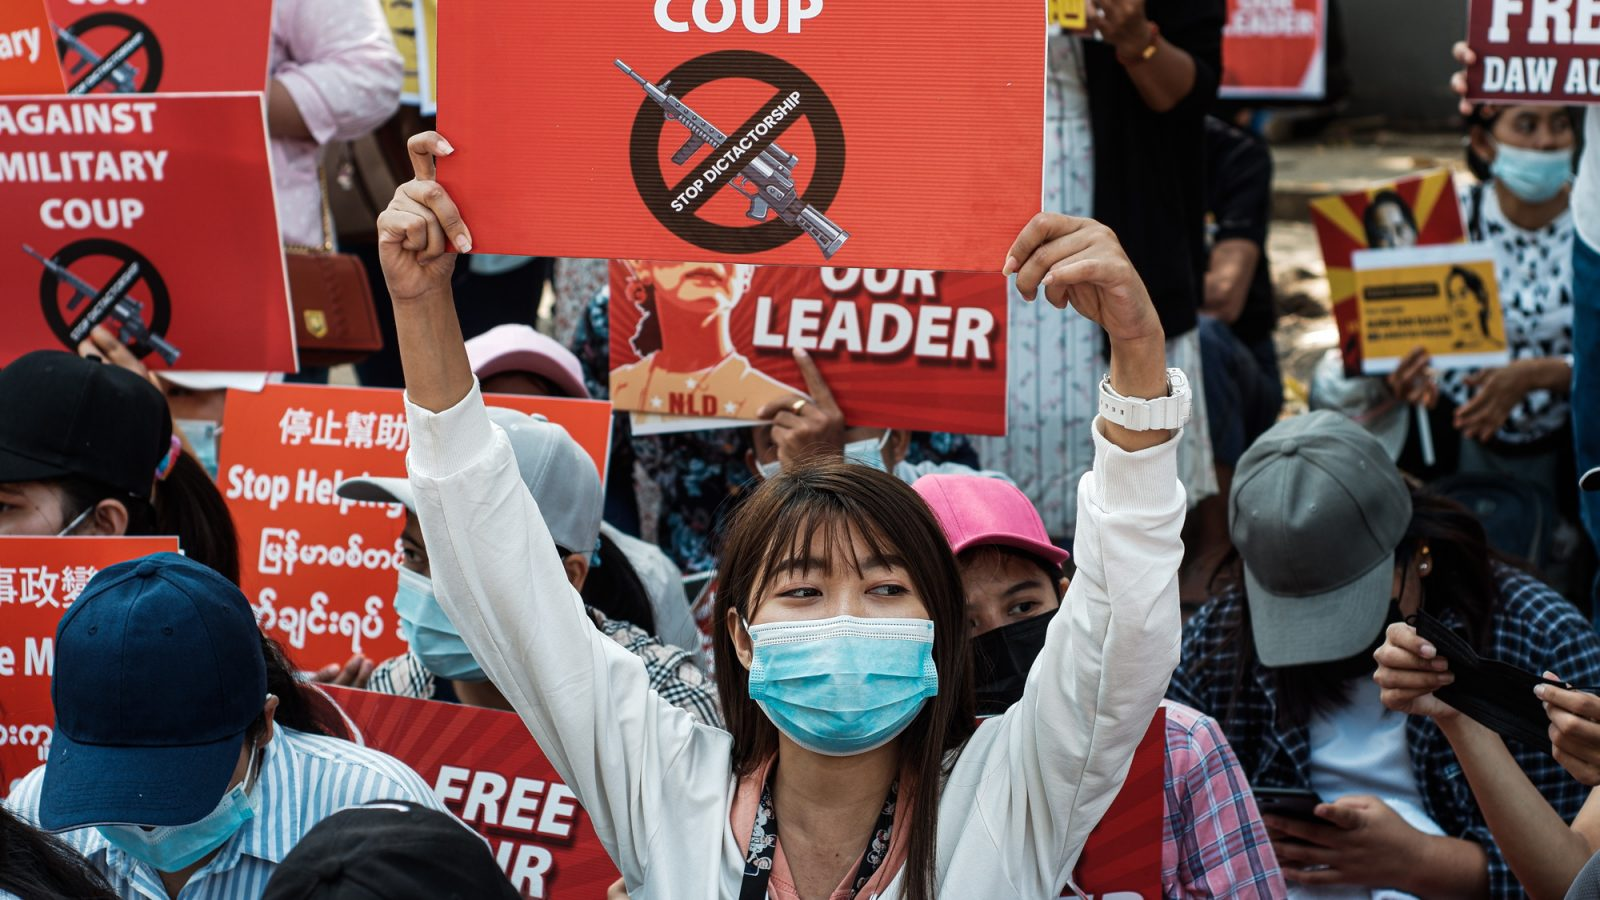 Protest against coup in Myanmar